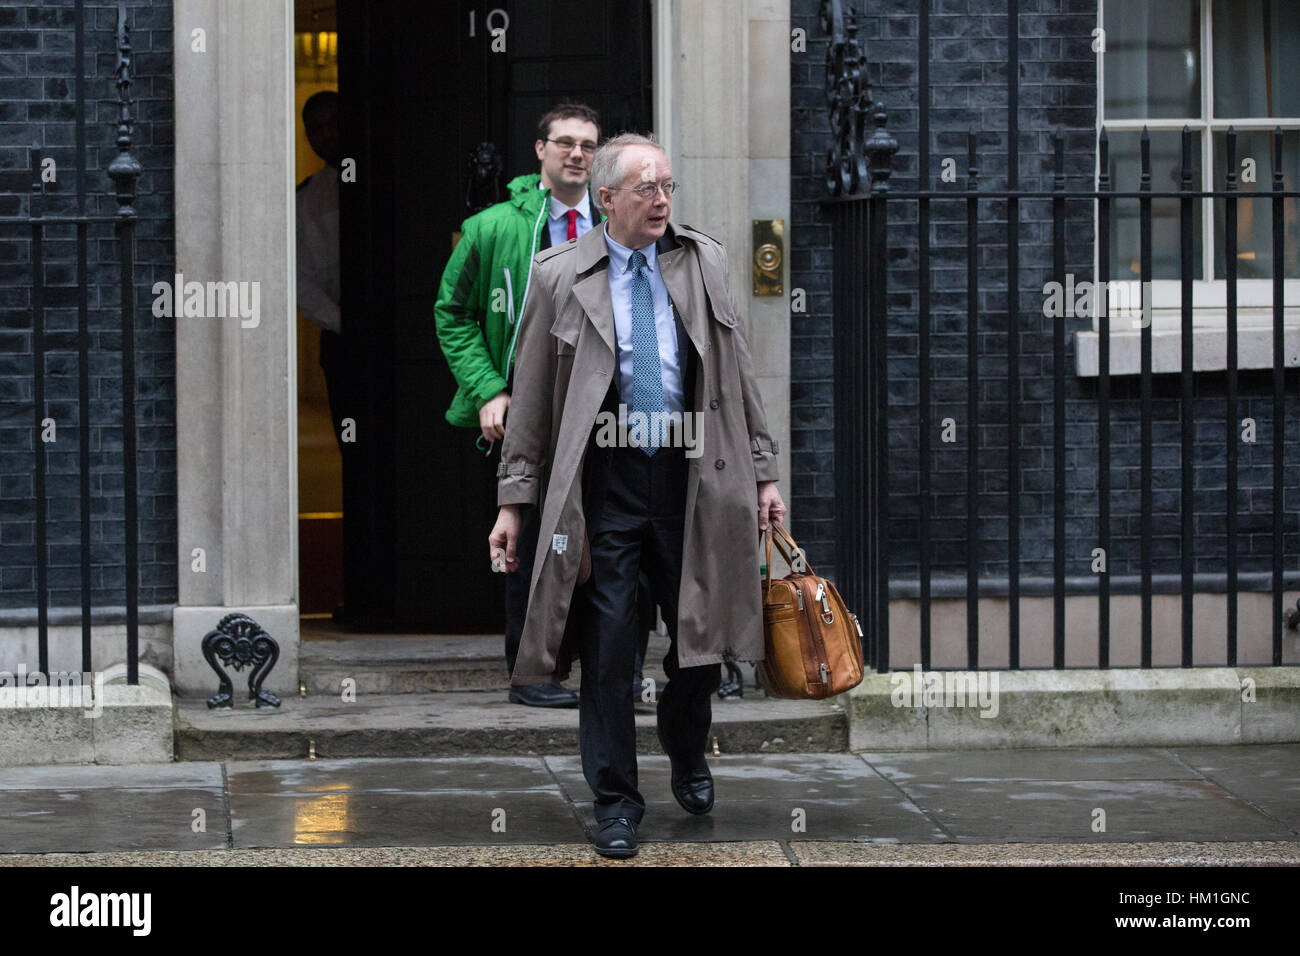 London, UK. 31st January, 2017. Myron Ebell, the controversial climate change sceptic and adviser to President Donald Stock Photo